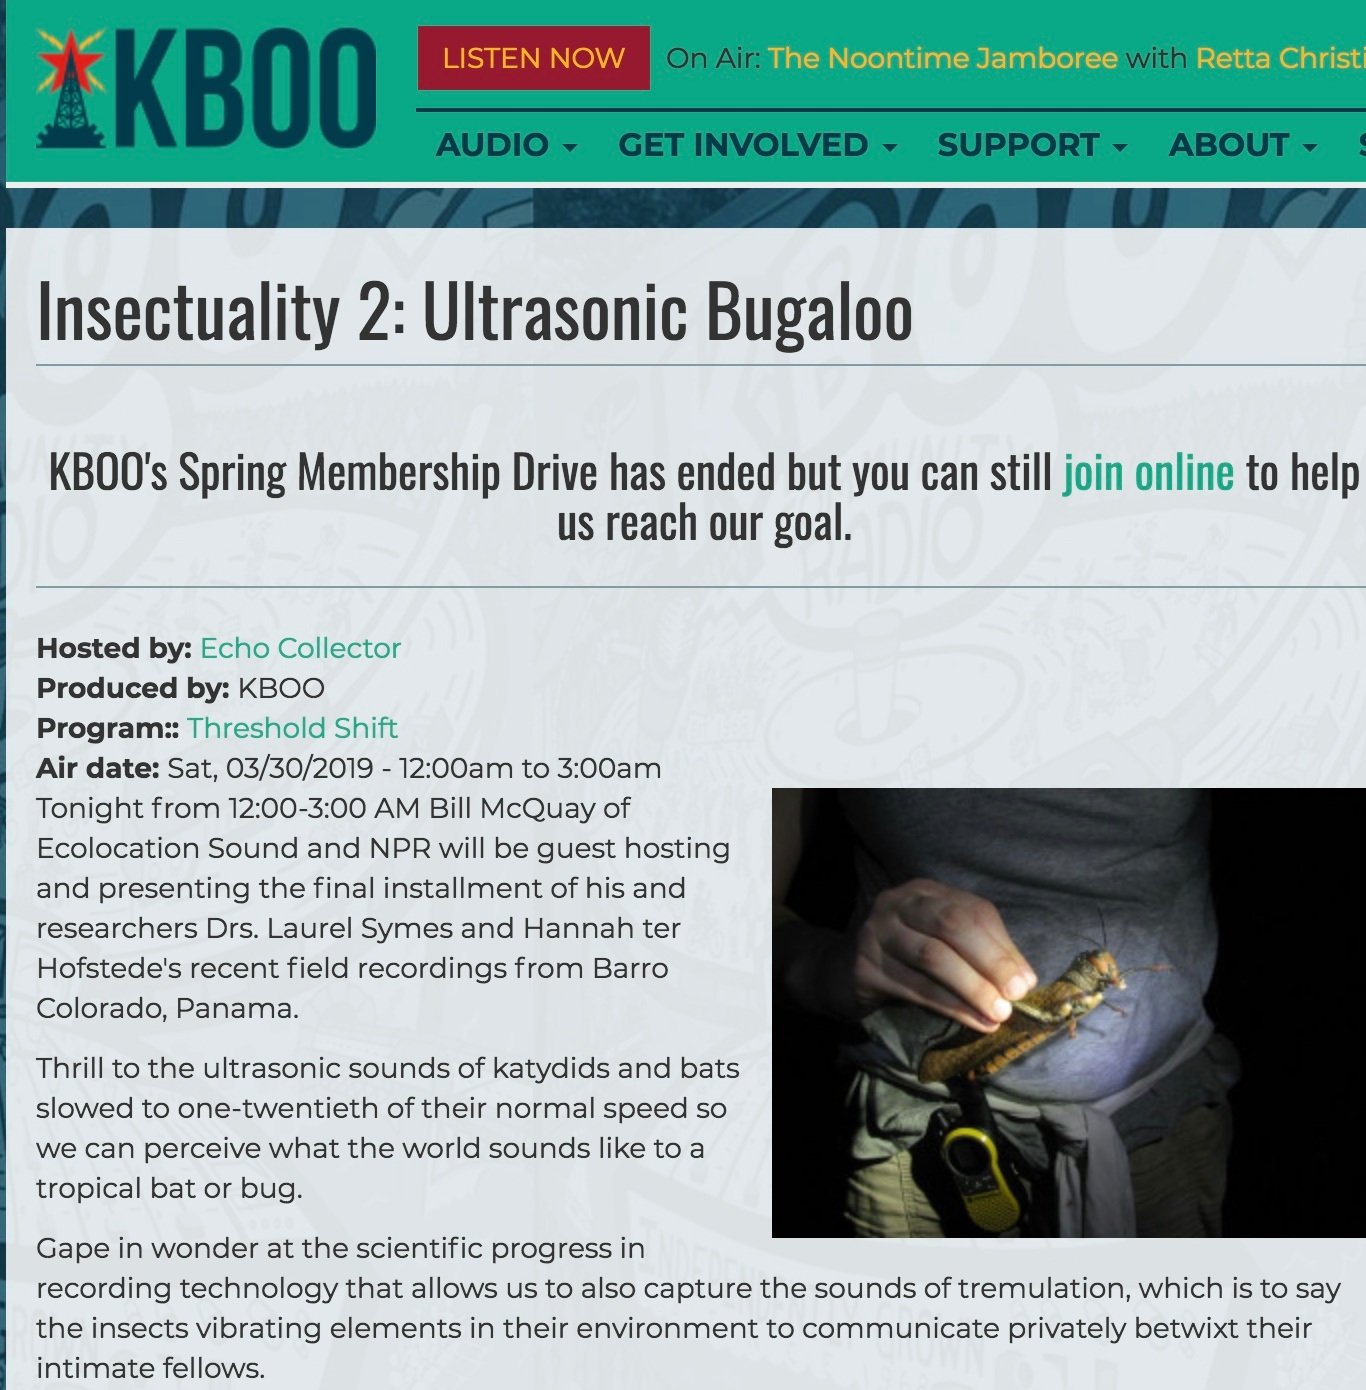 https://kboo.fm/media/72156-insectuality-2-ultrasonic-bugaloo